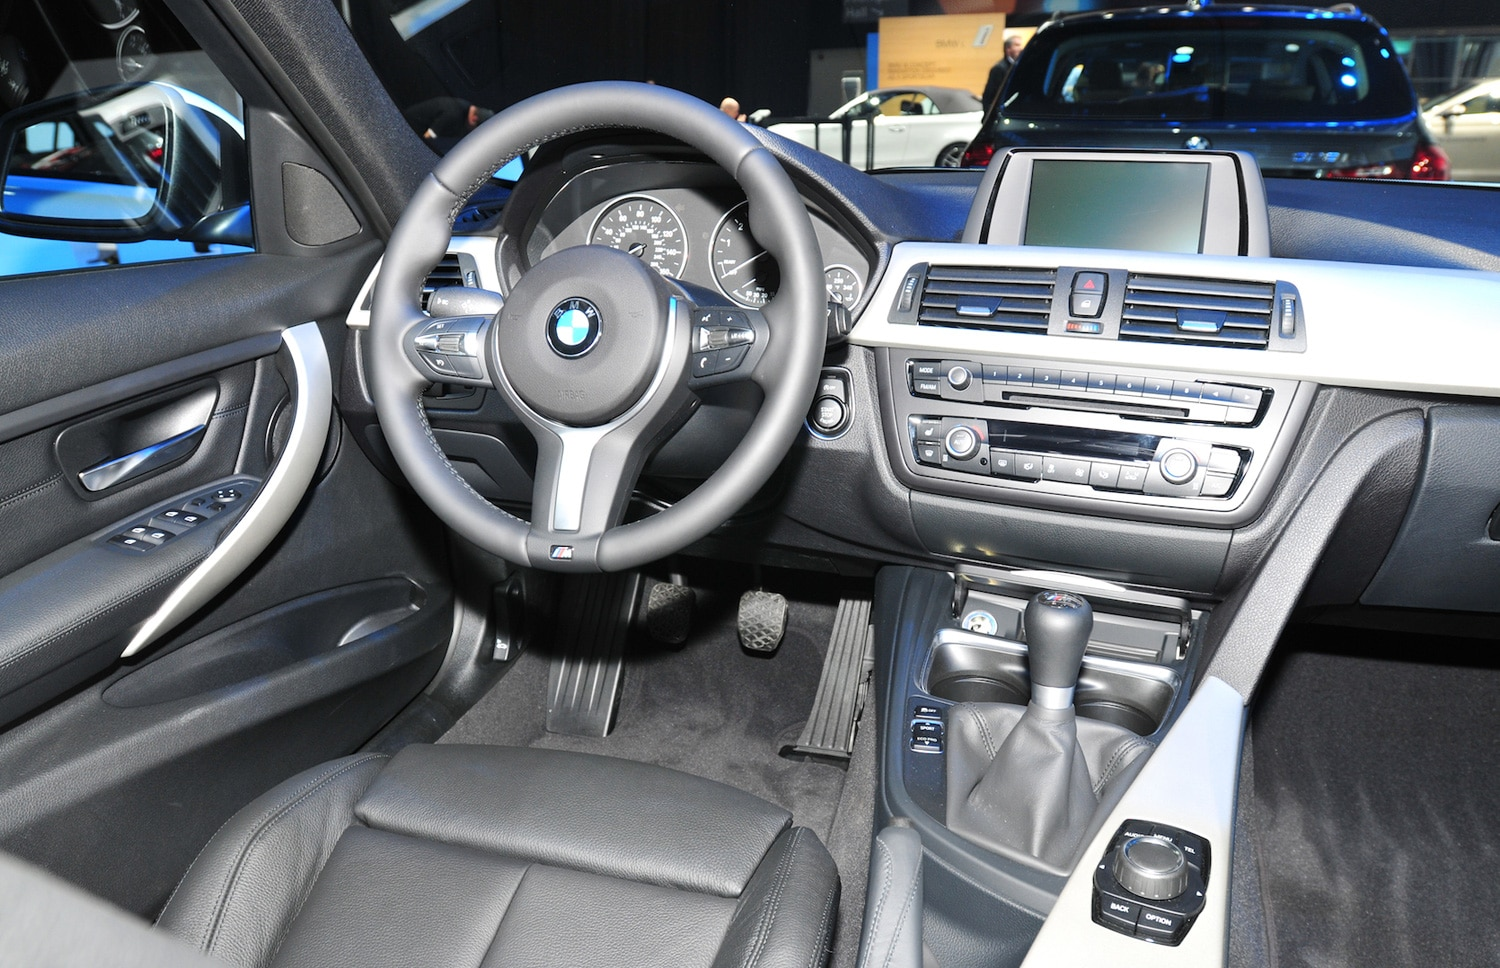 2013 bmw 320i interior male models picture - Evan Mccausland